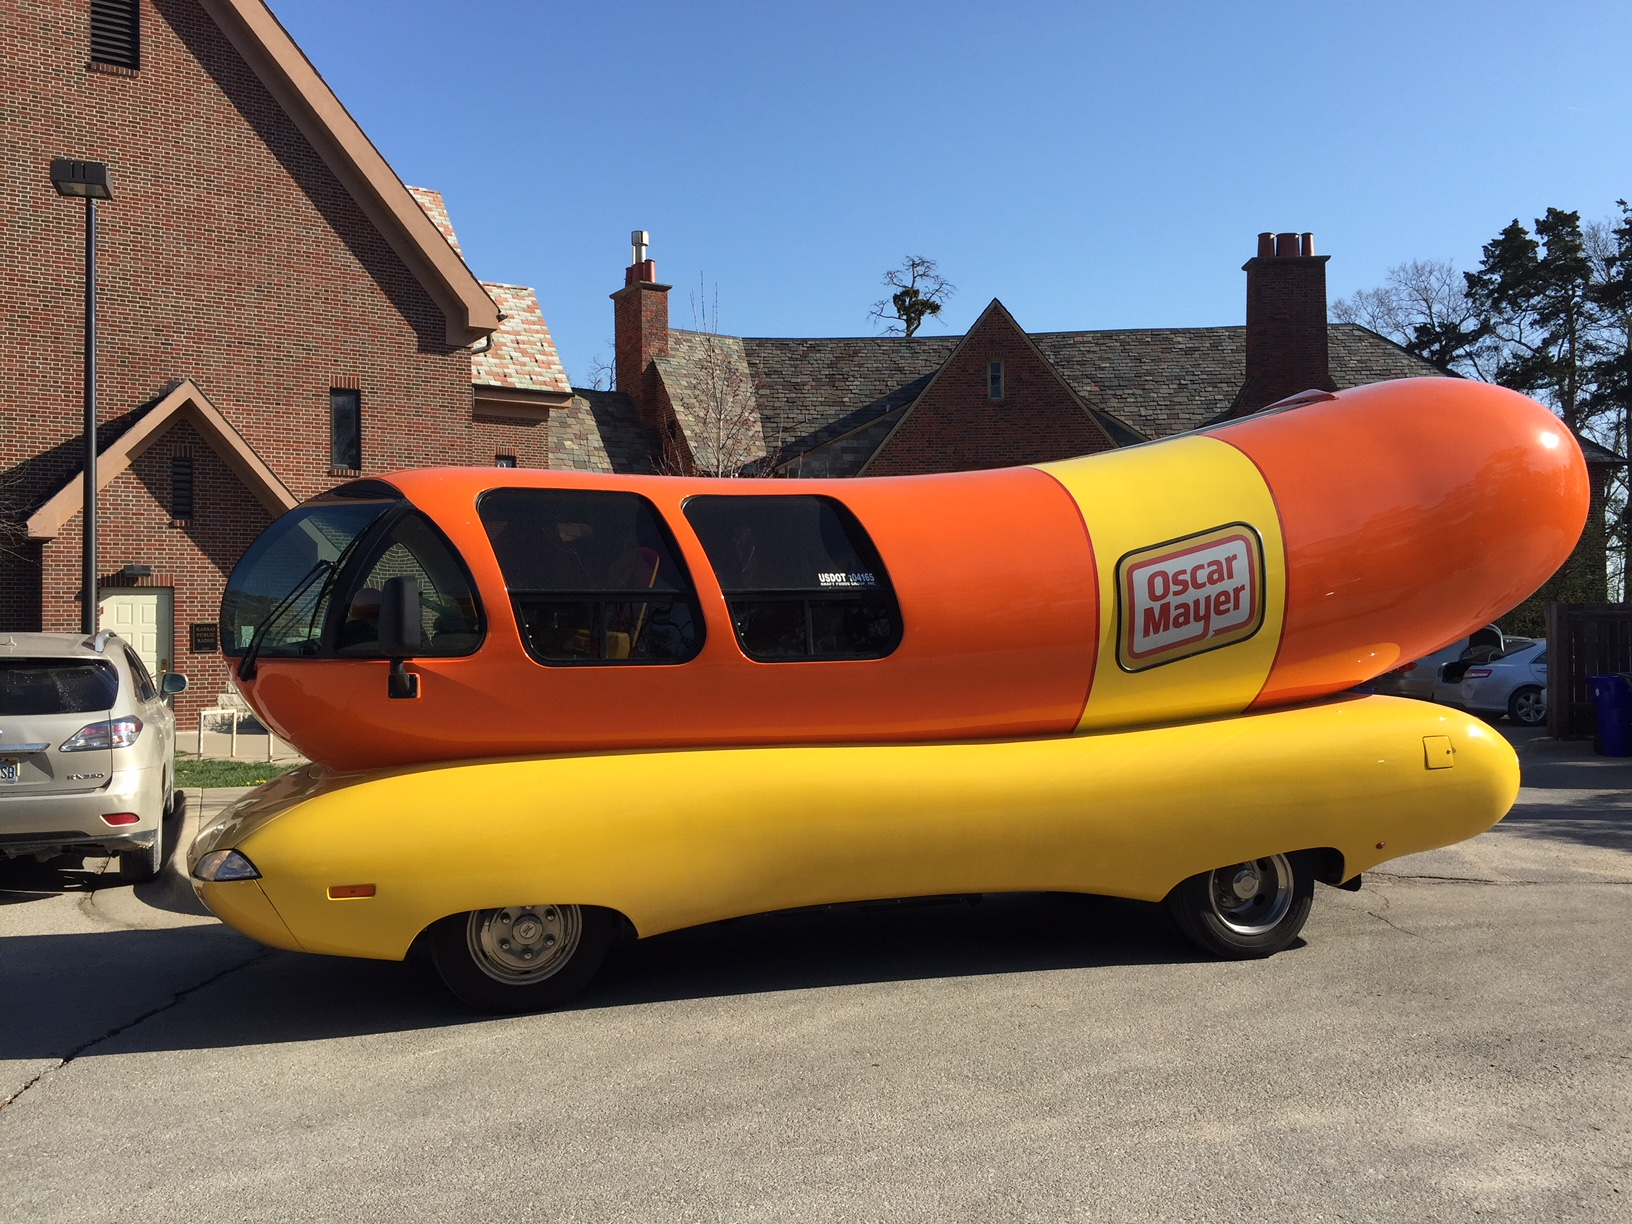 The Oscar Mayer Wienermobile, visiting Kansas Public Radio on April 12, 2018, during KPR's spring membership drive.  (Photo by J. Schafer) .